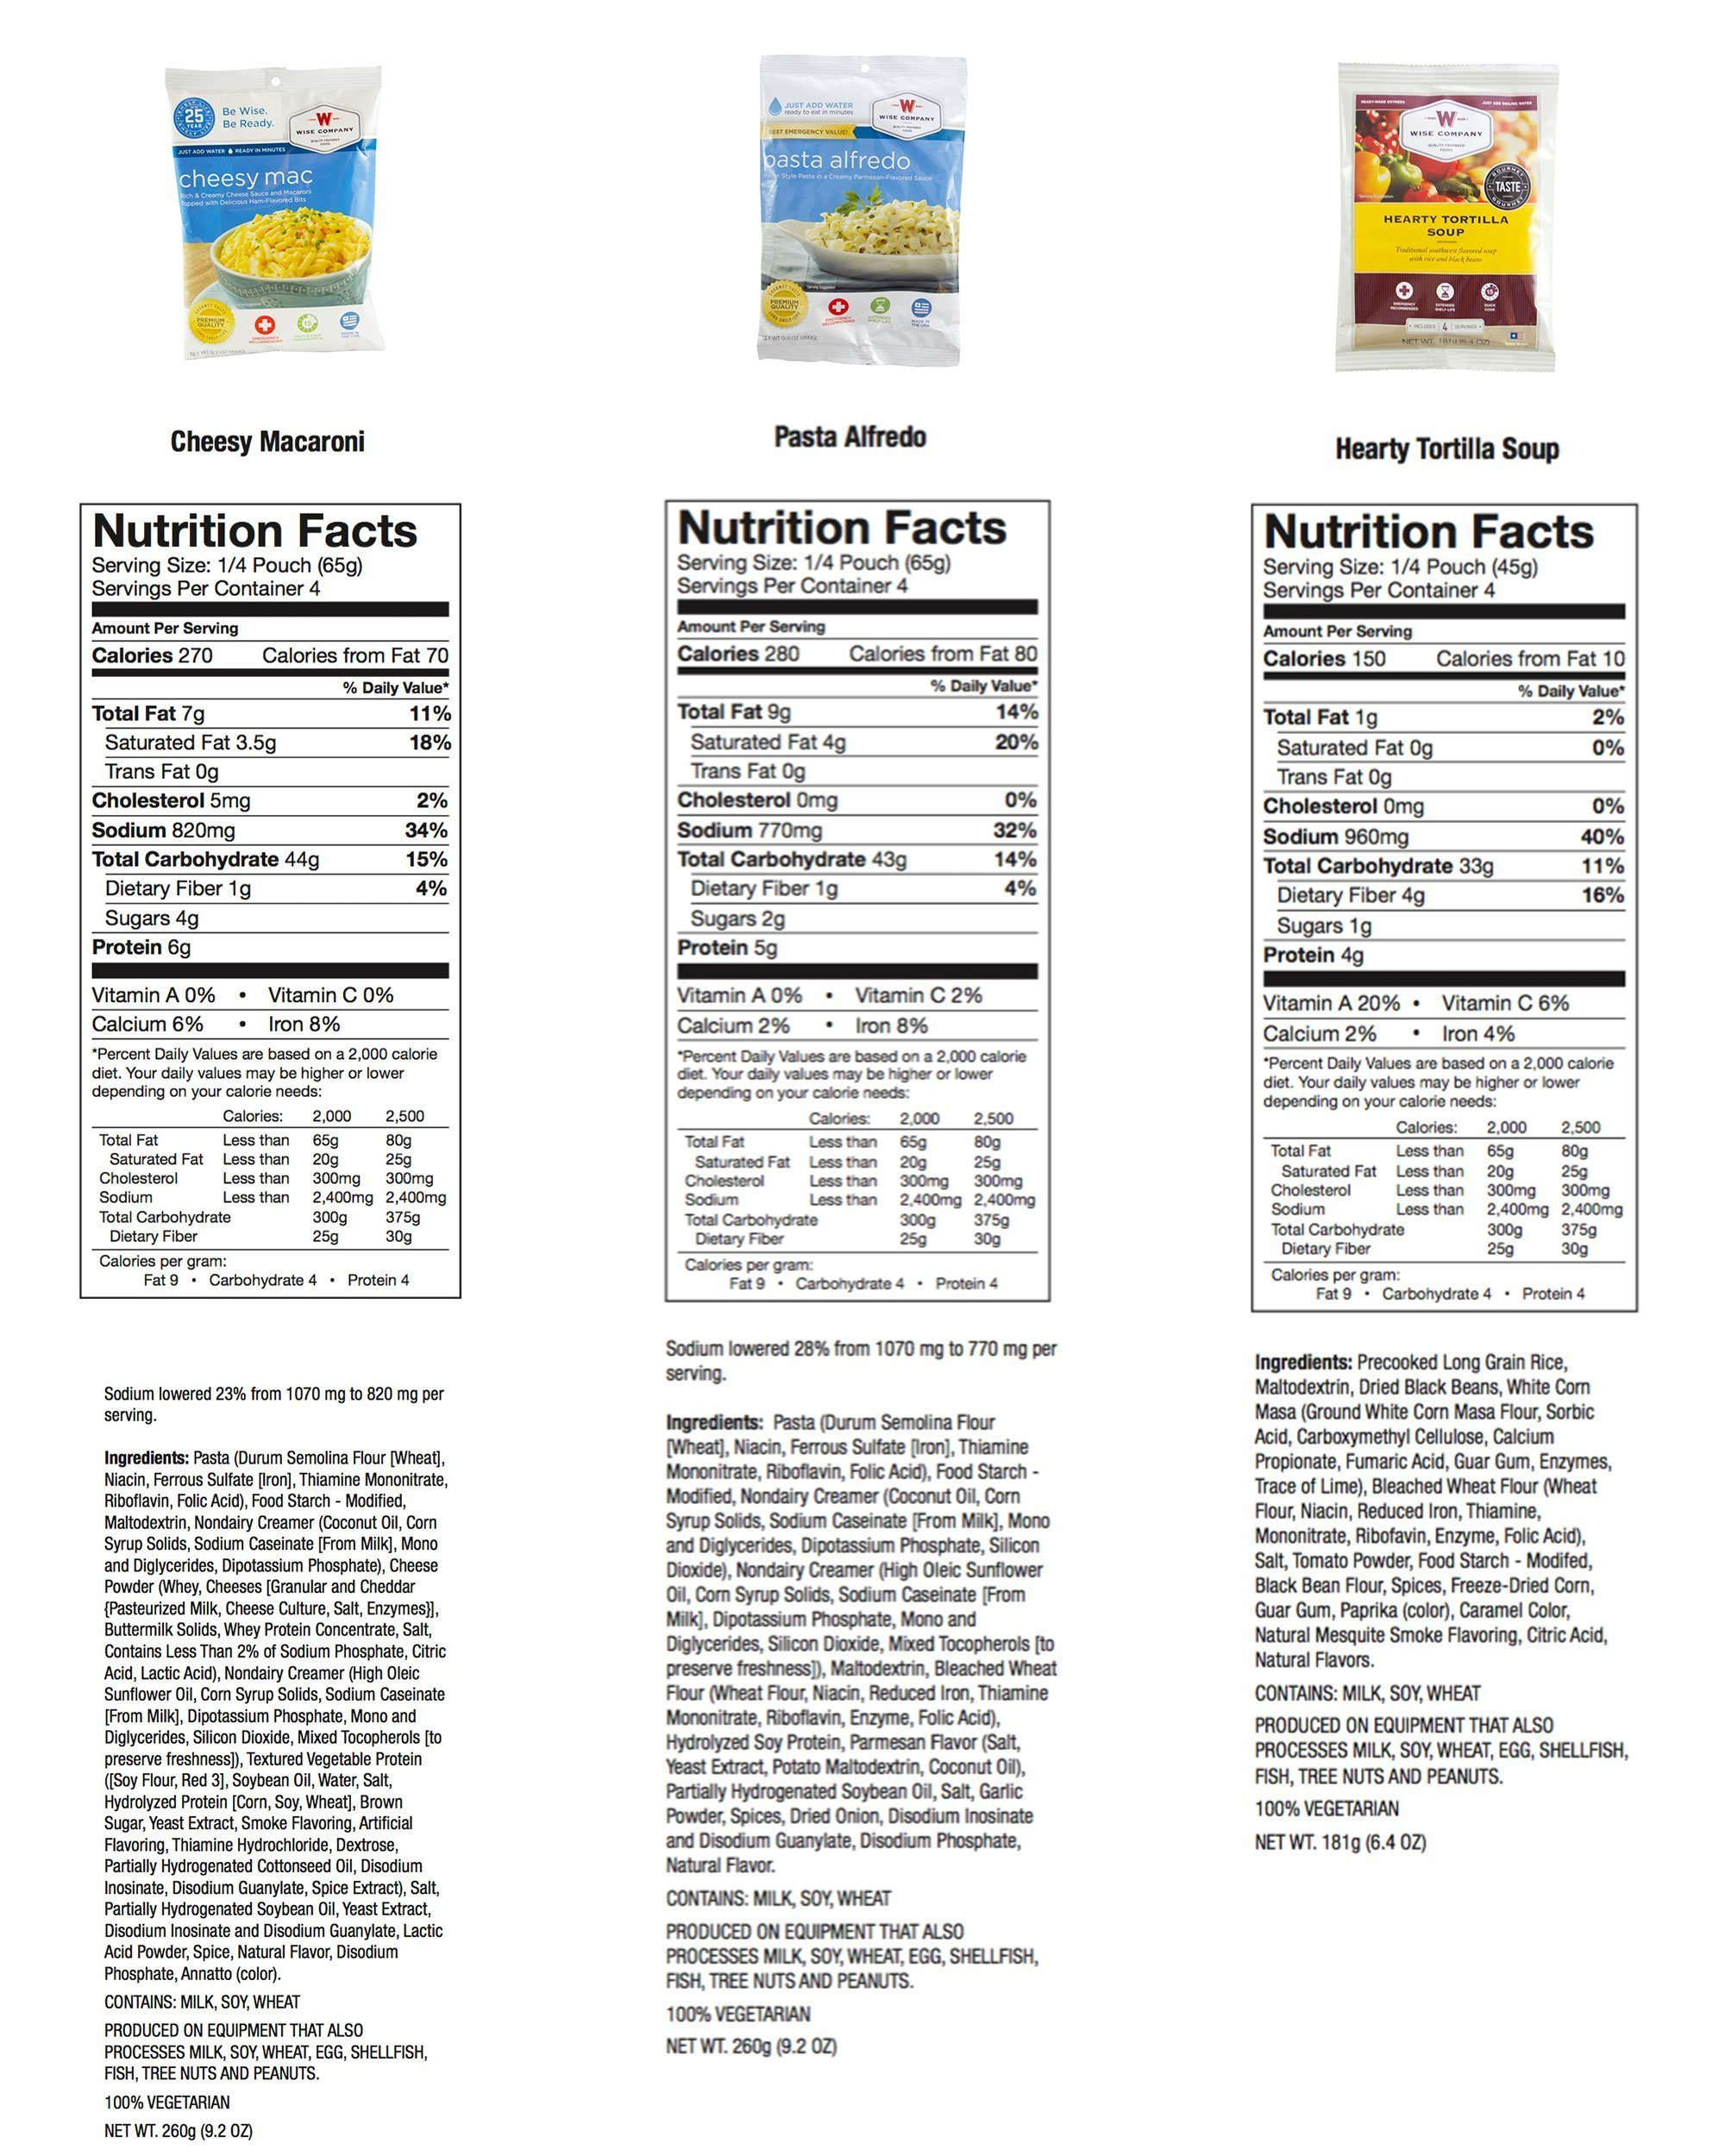 Wise Emergency Foods Nutritional Information 6